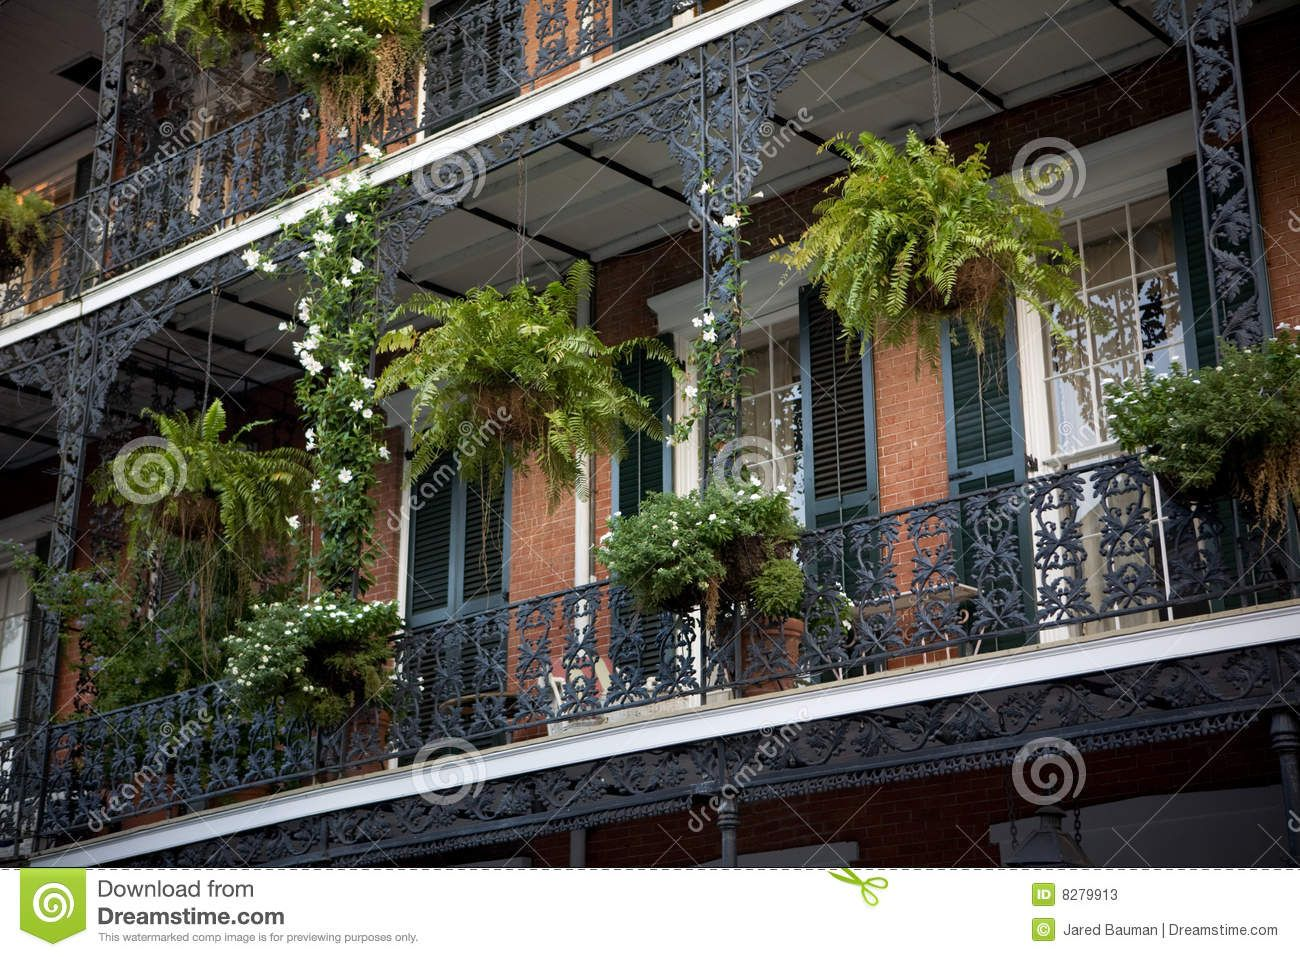 Balcony Grill new orleans-#Balcony #Grill #new #orleans Please Click Link To Find More Reference,,, ENJOY!!